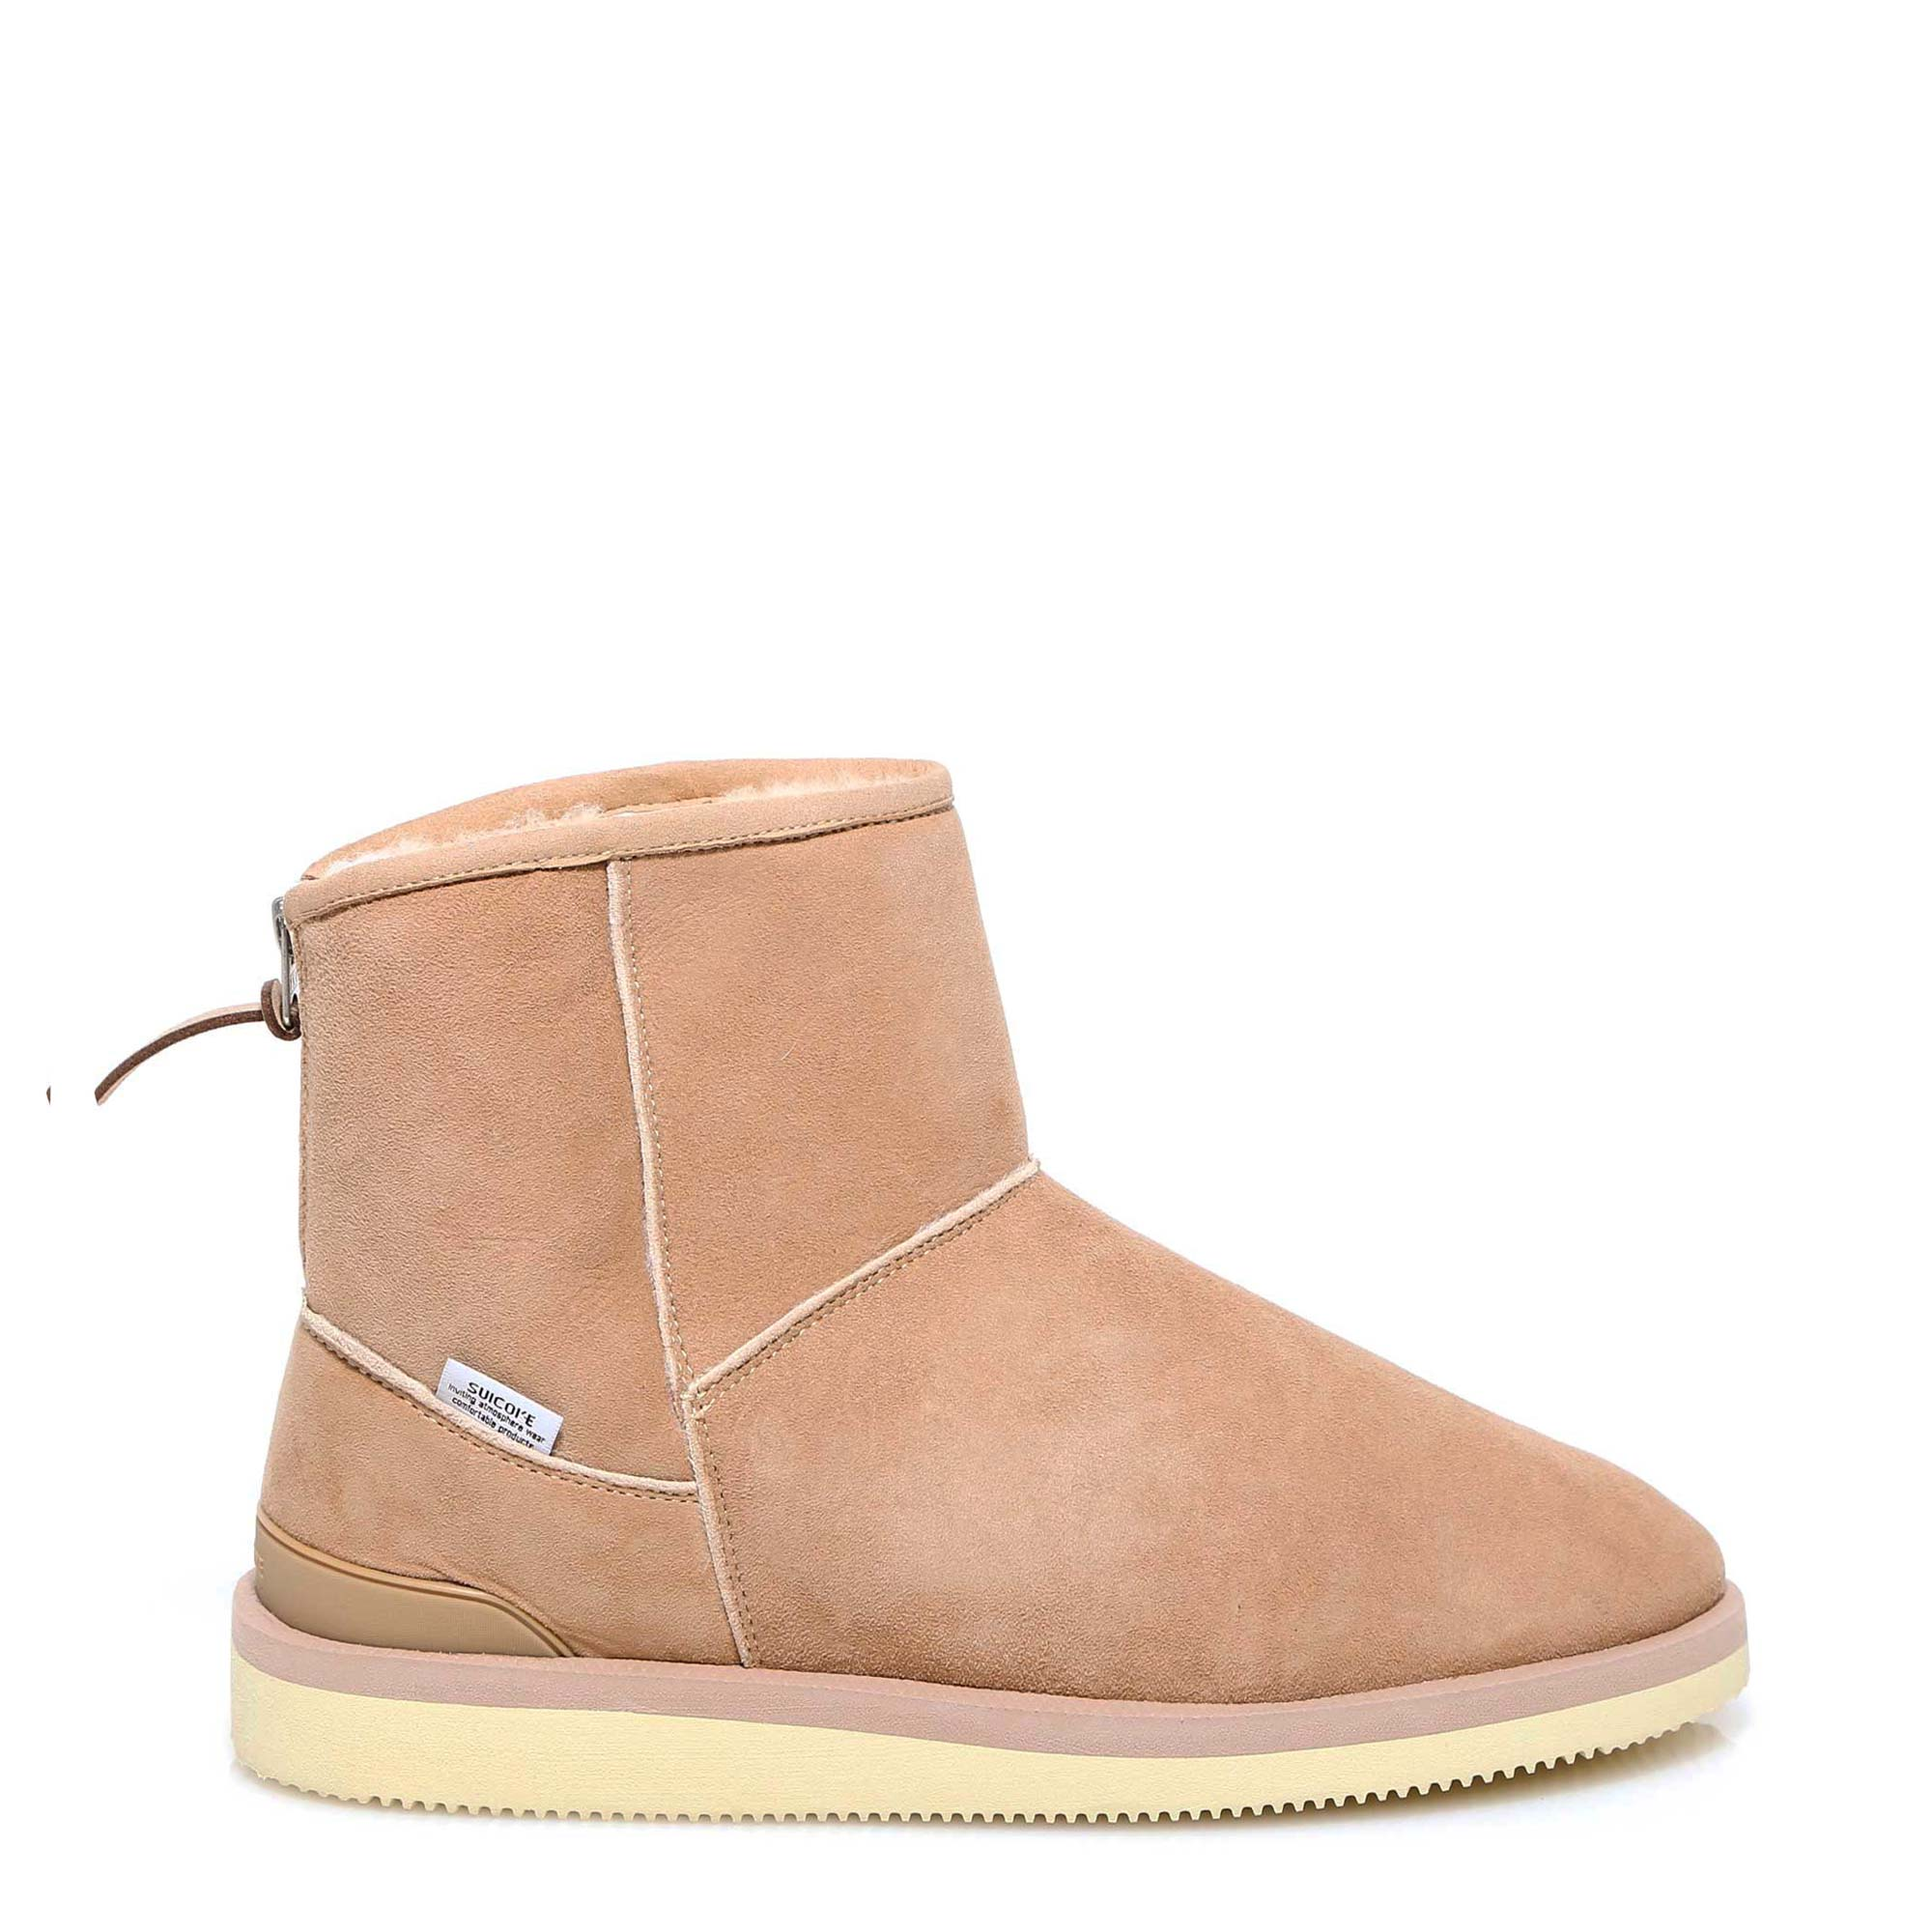 Suicoke SUICOKE ZIP UP ANKLE BOOTS